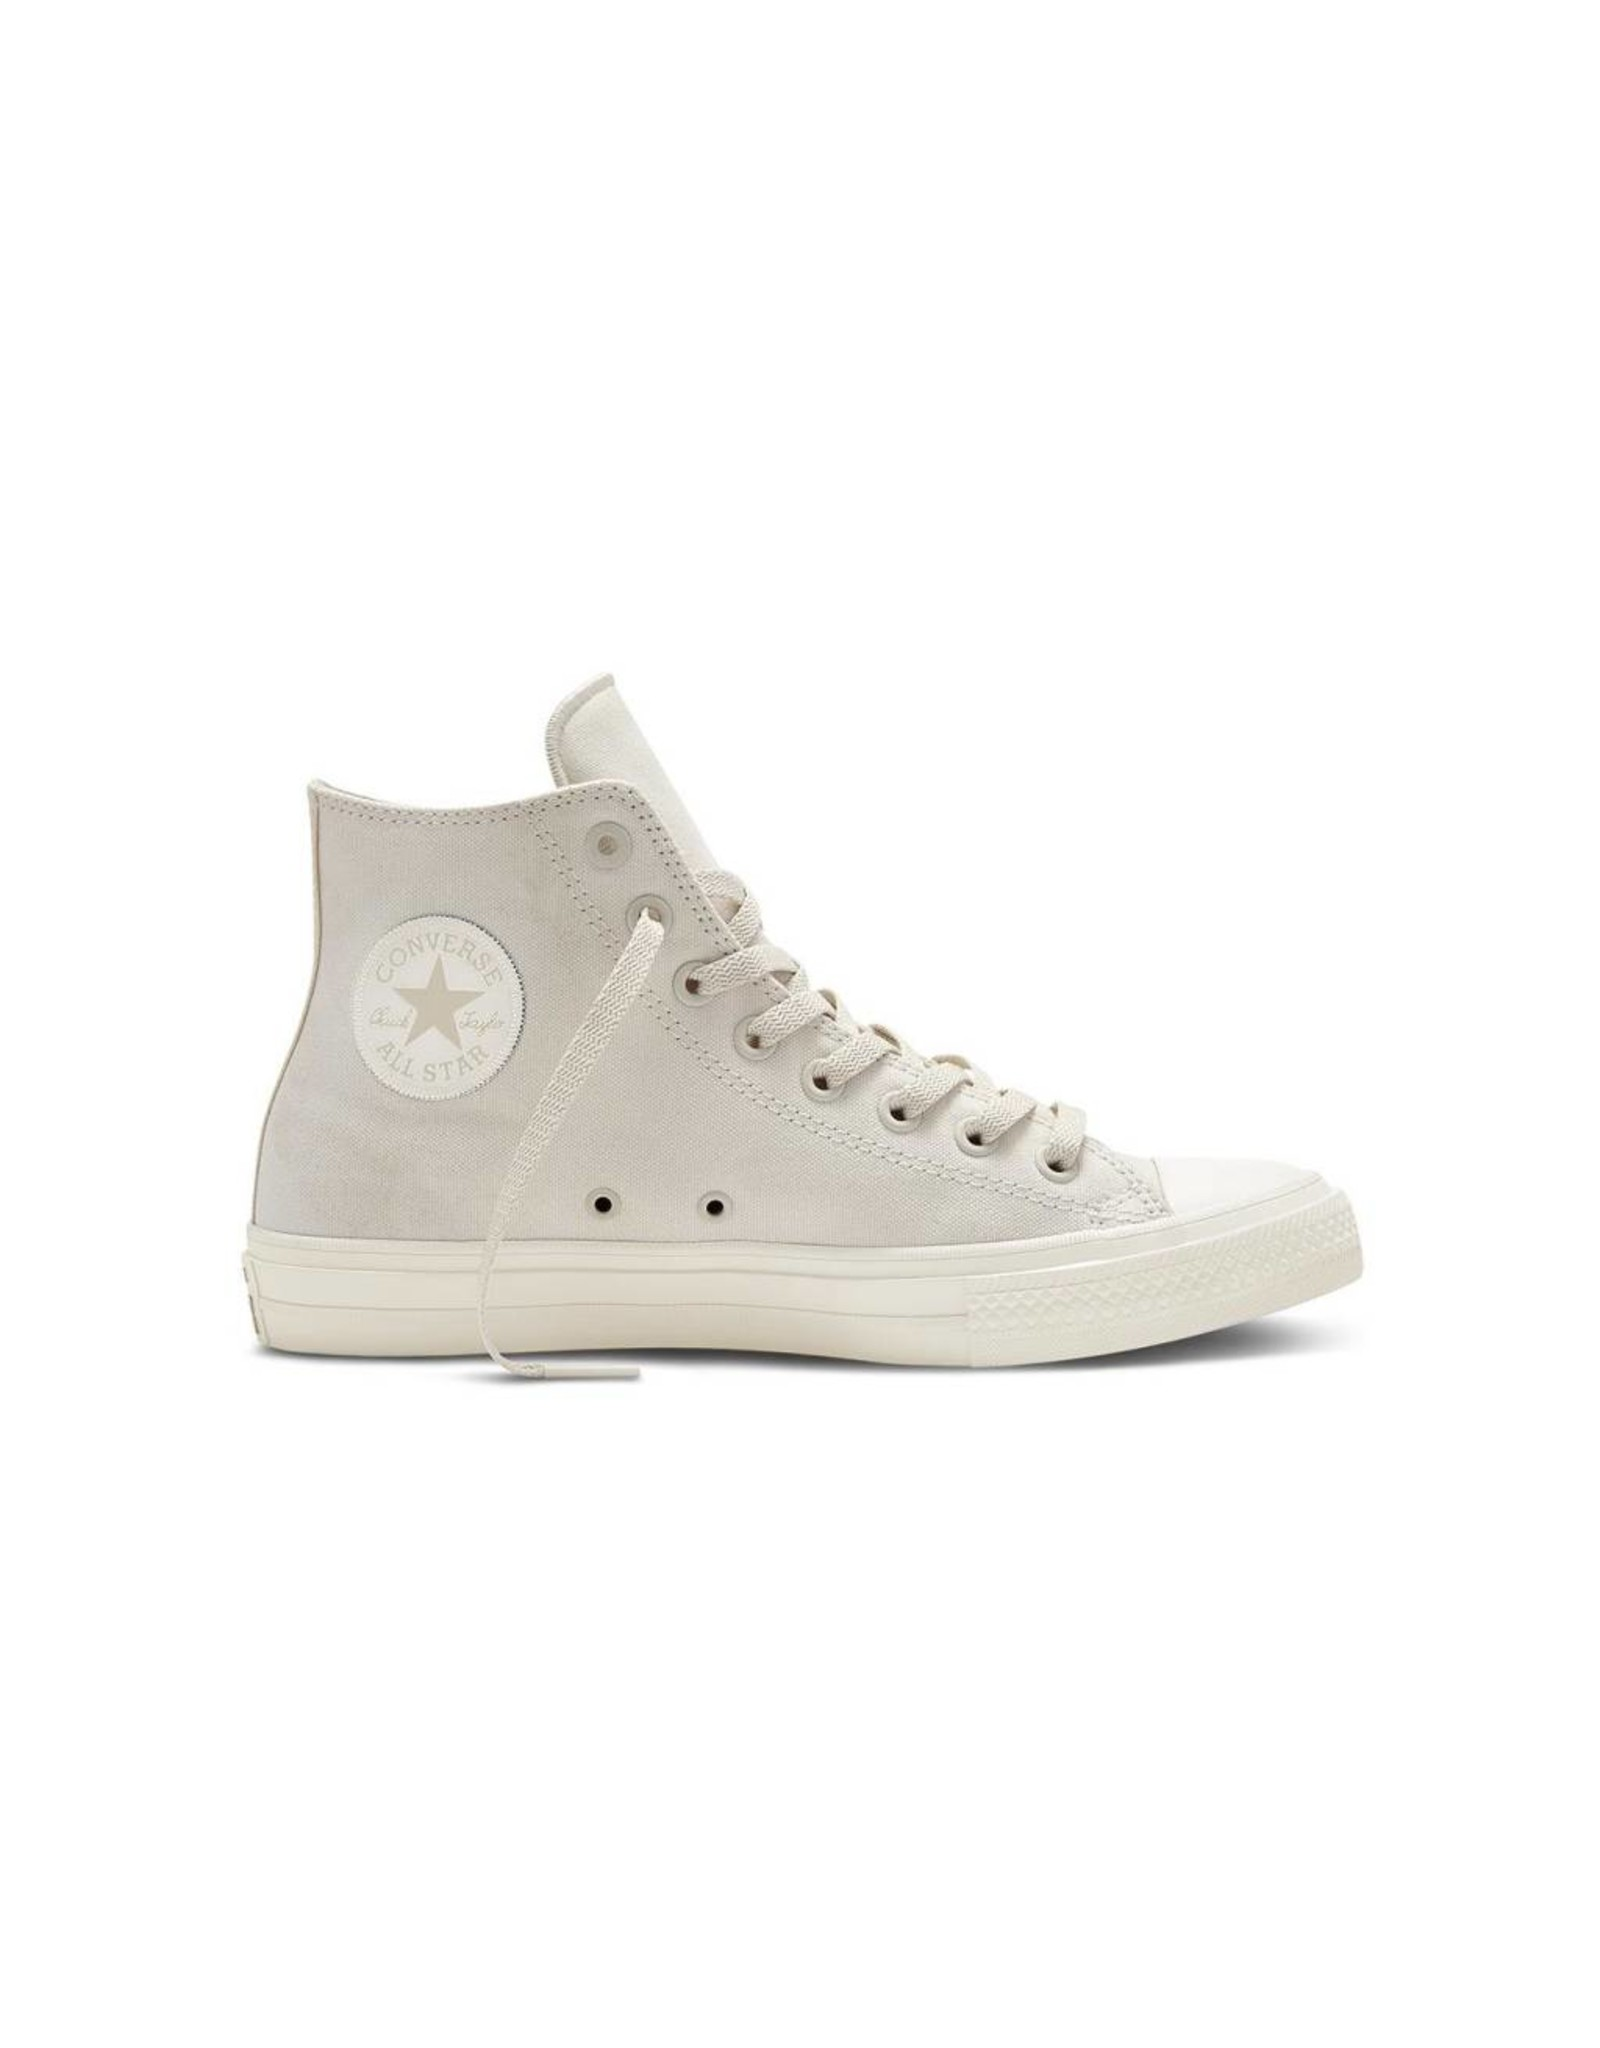 CONVERSE Chuck Taylor All Star  II HI PARCHMENT NAVY WHITE CT2HPA -151222C